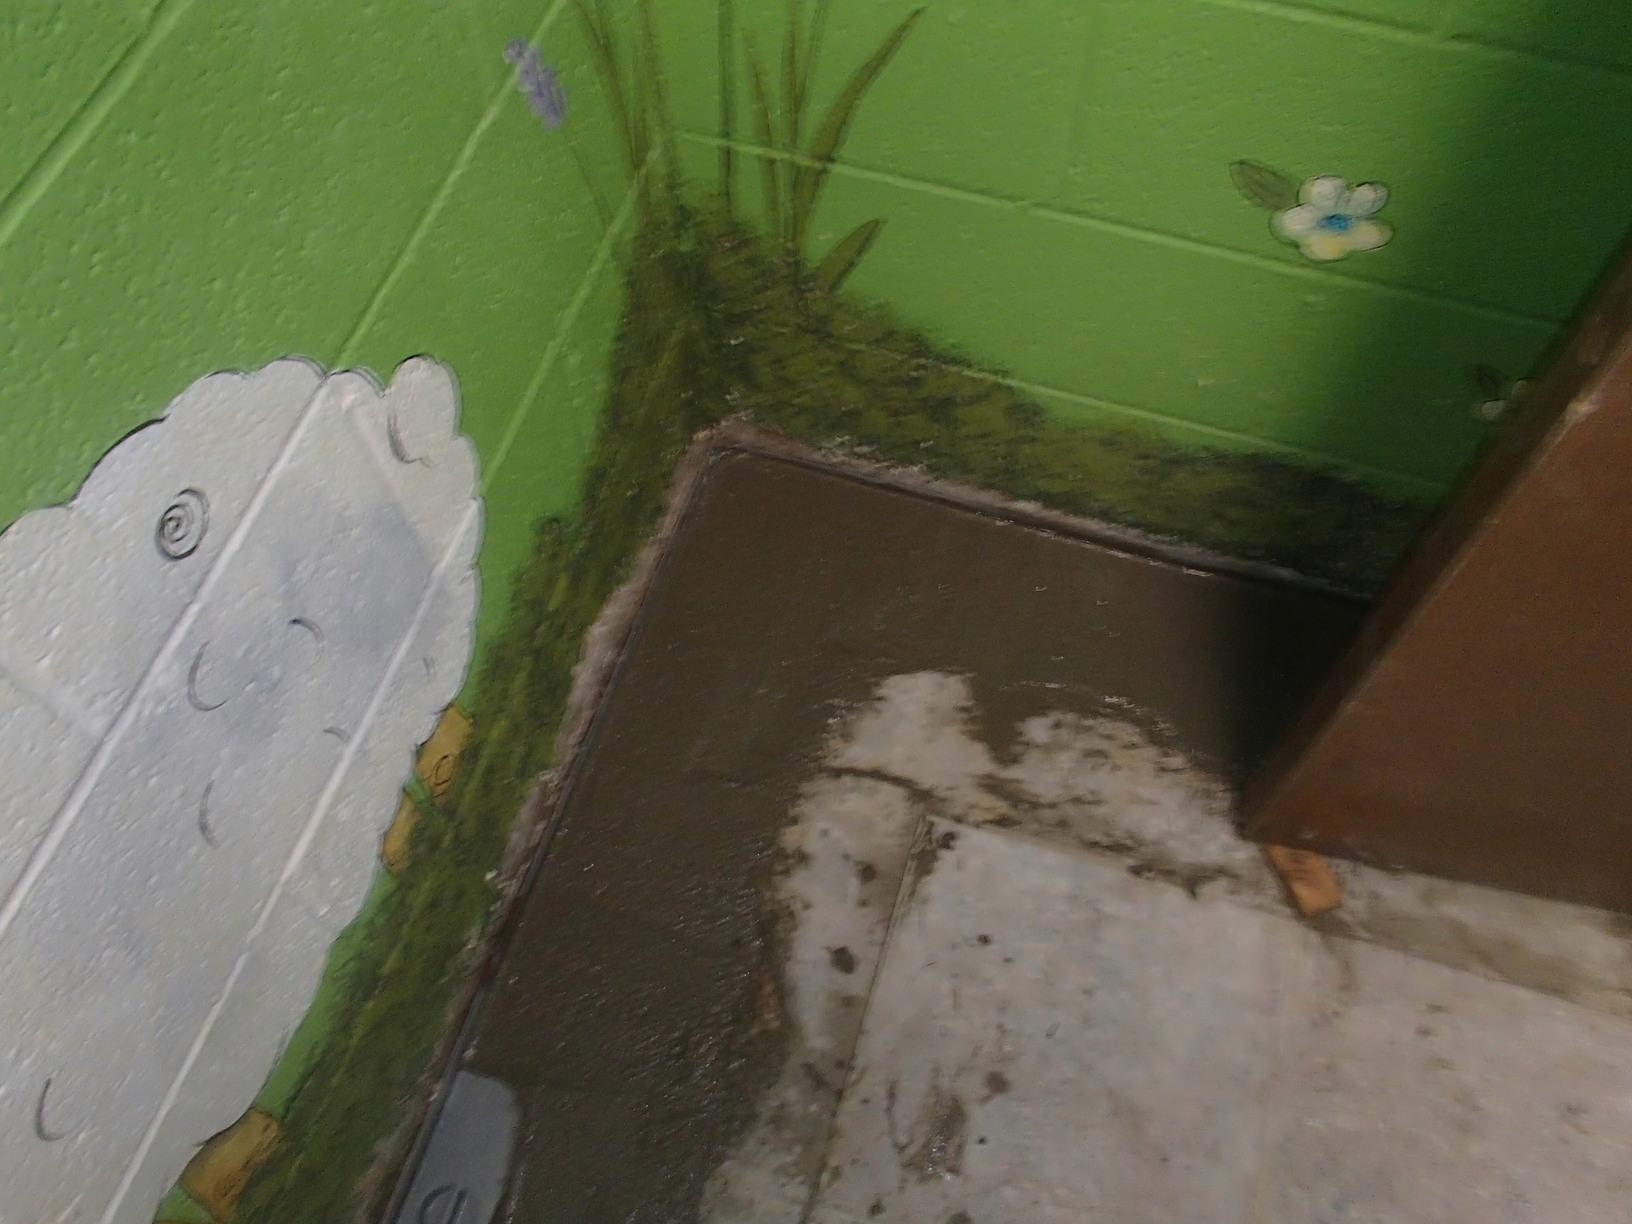 Church gets Waterproofed in St. Albans, WV - After Photo